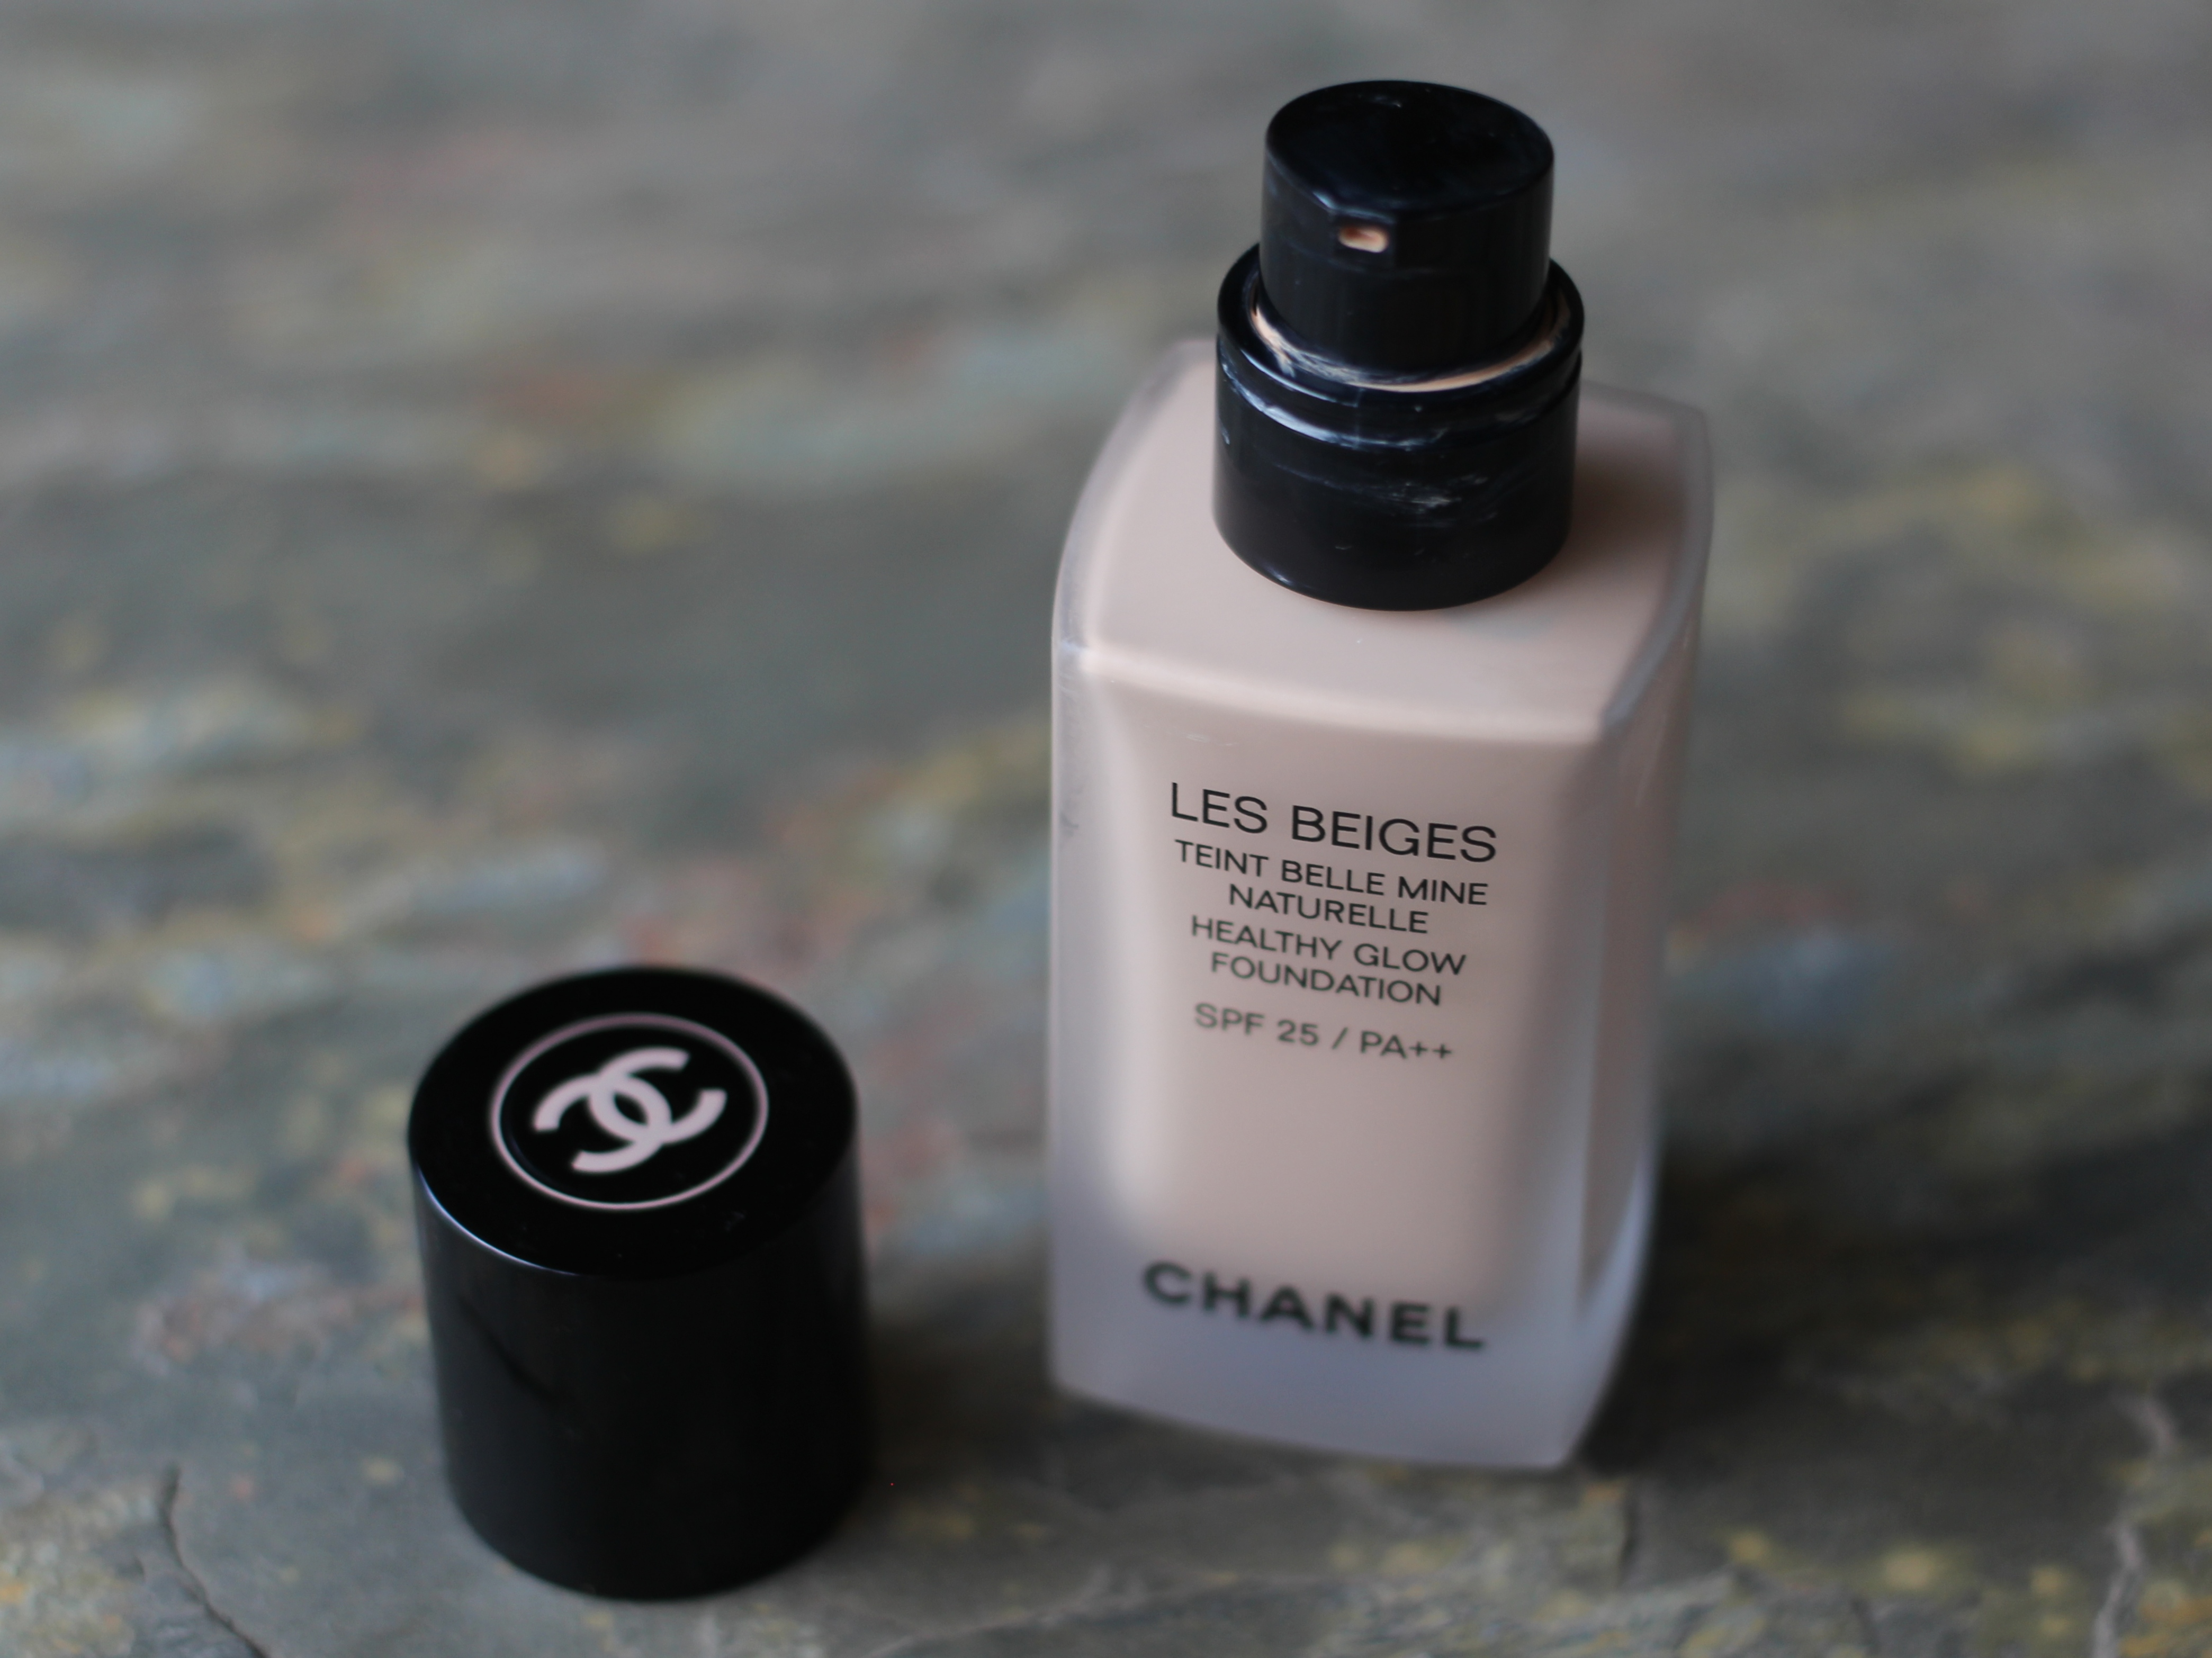 Chanel Les Beidges healthy Glow Foundatio Review